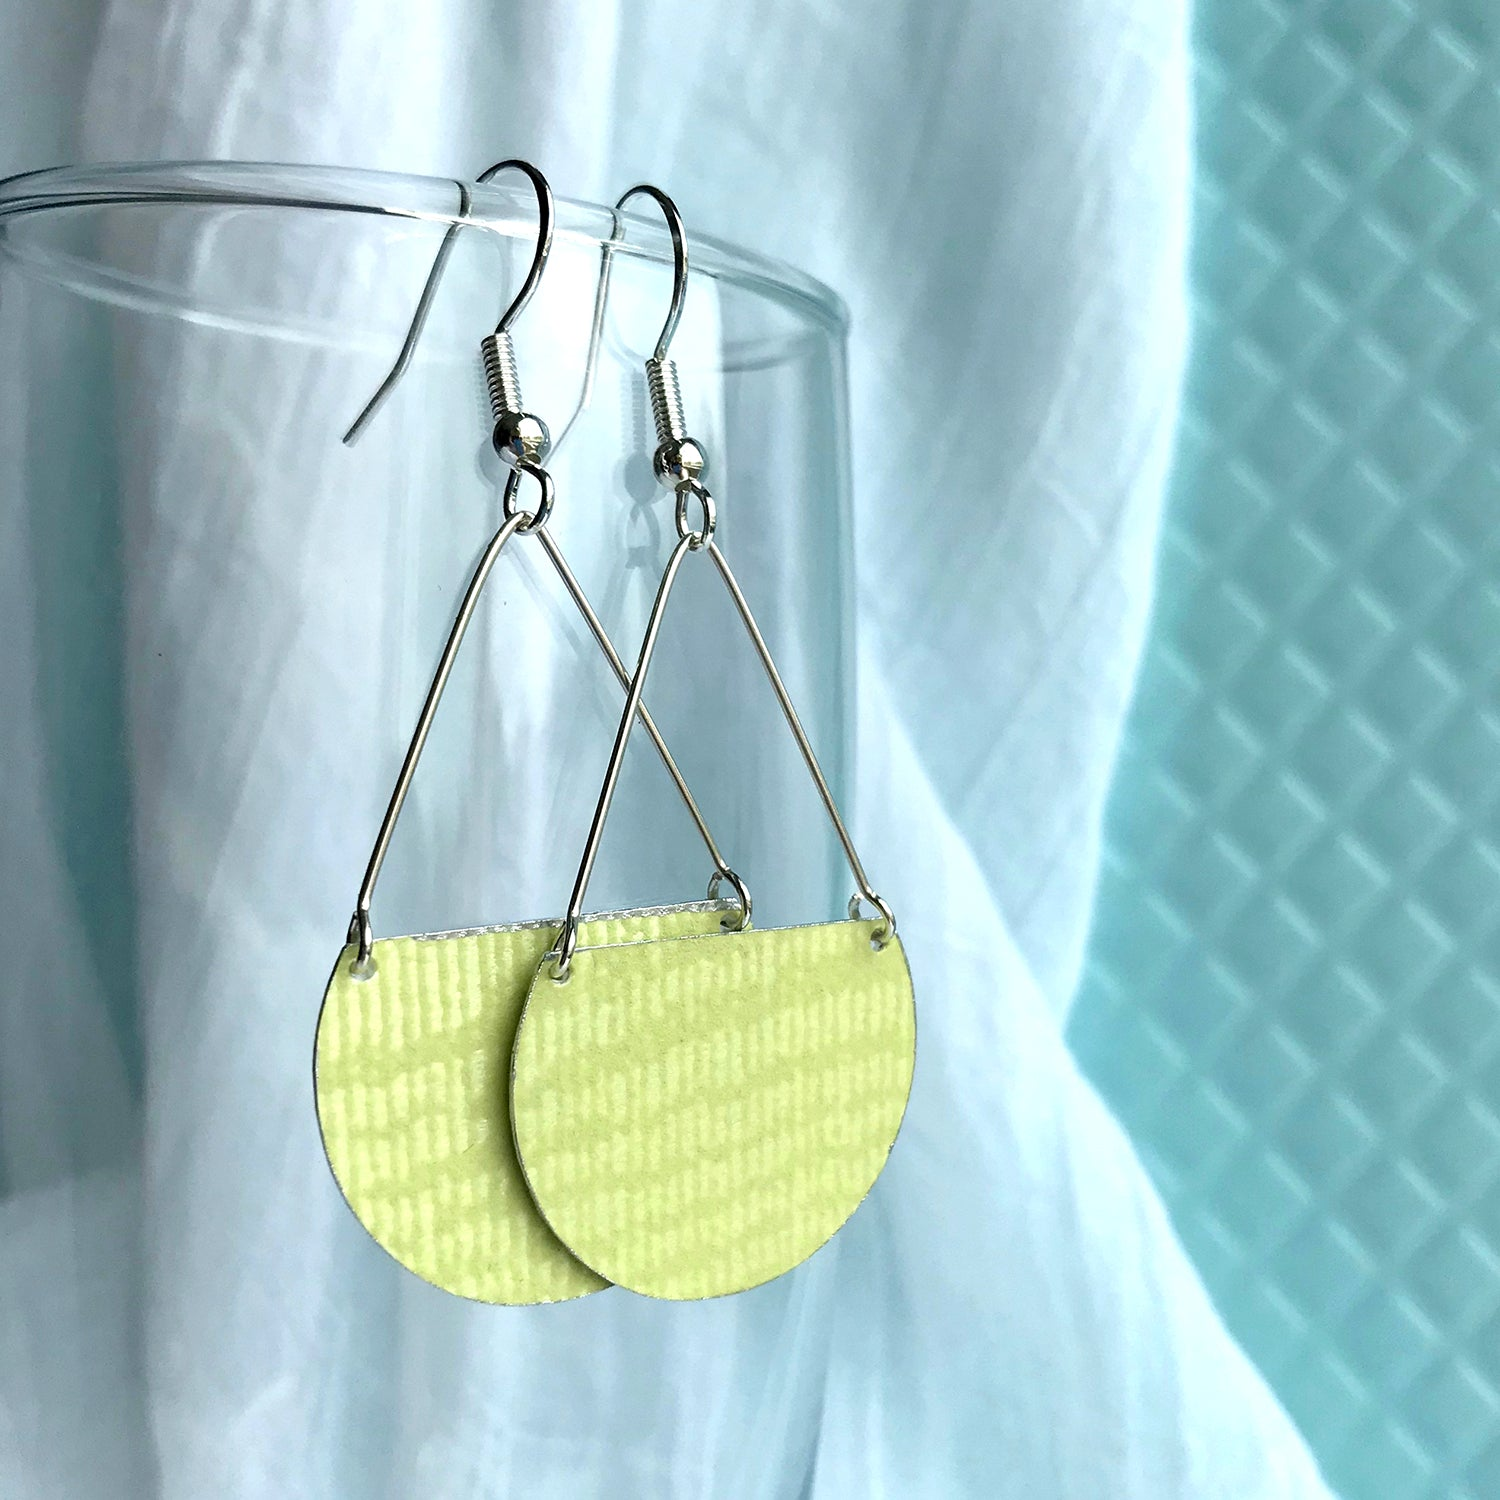 Gracie Nicole Handmade Jewelry. Flirty Lightweight Pale Chartreuse Green Semicircle Earrings